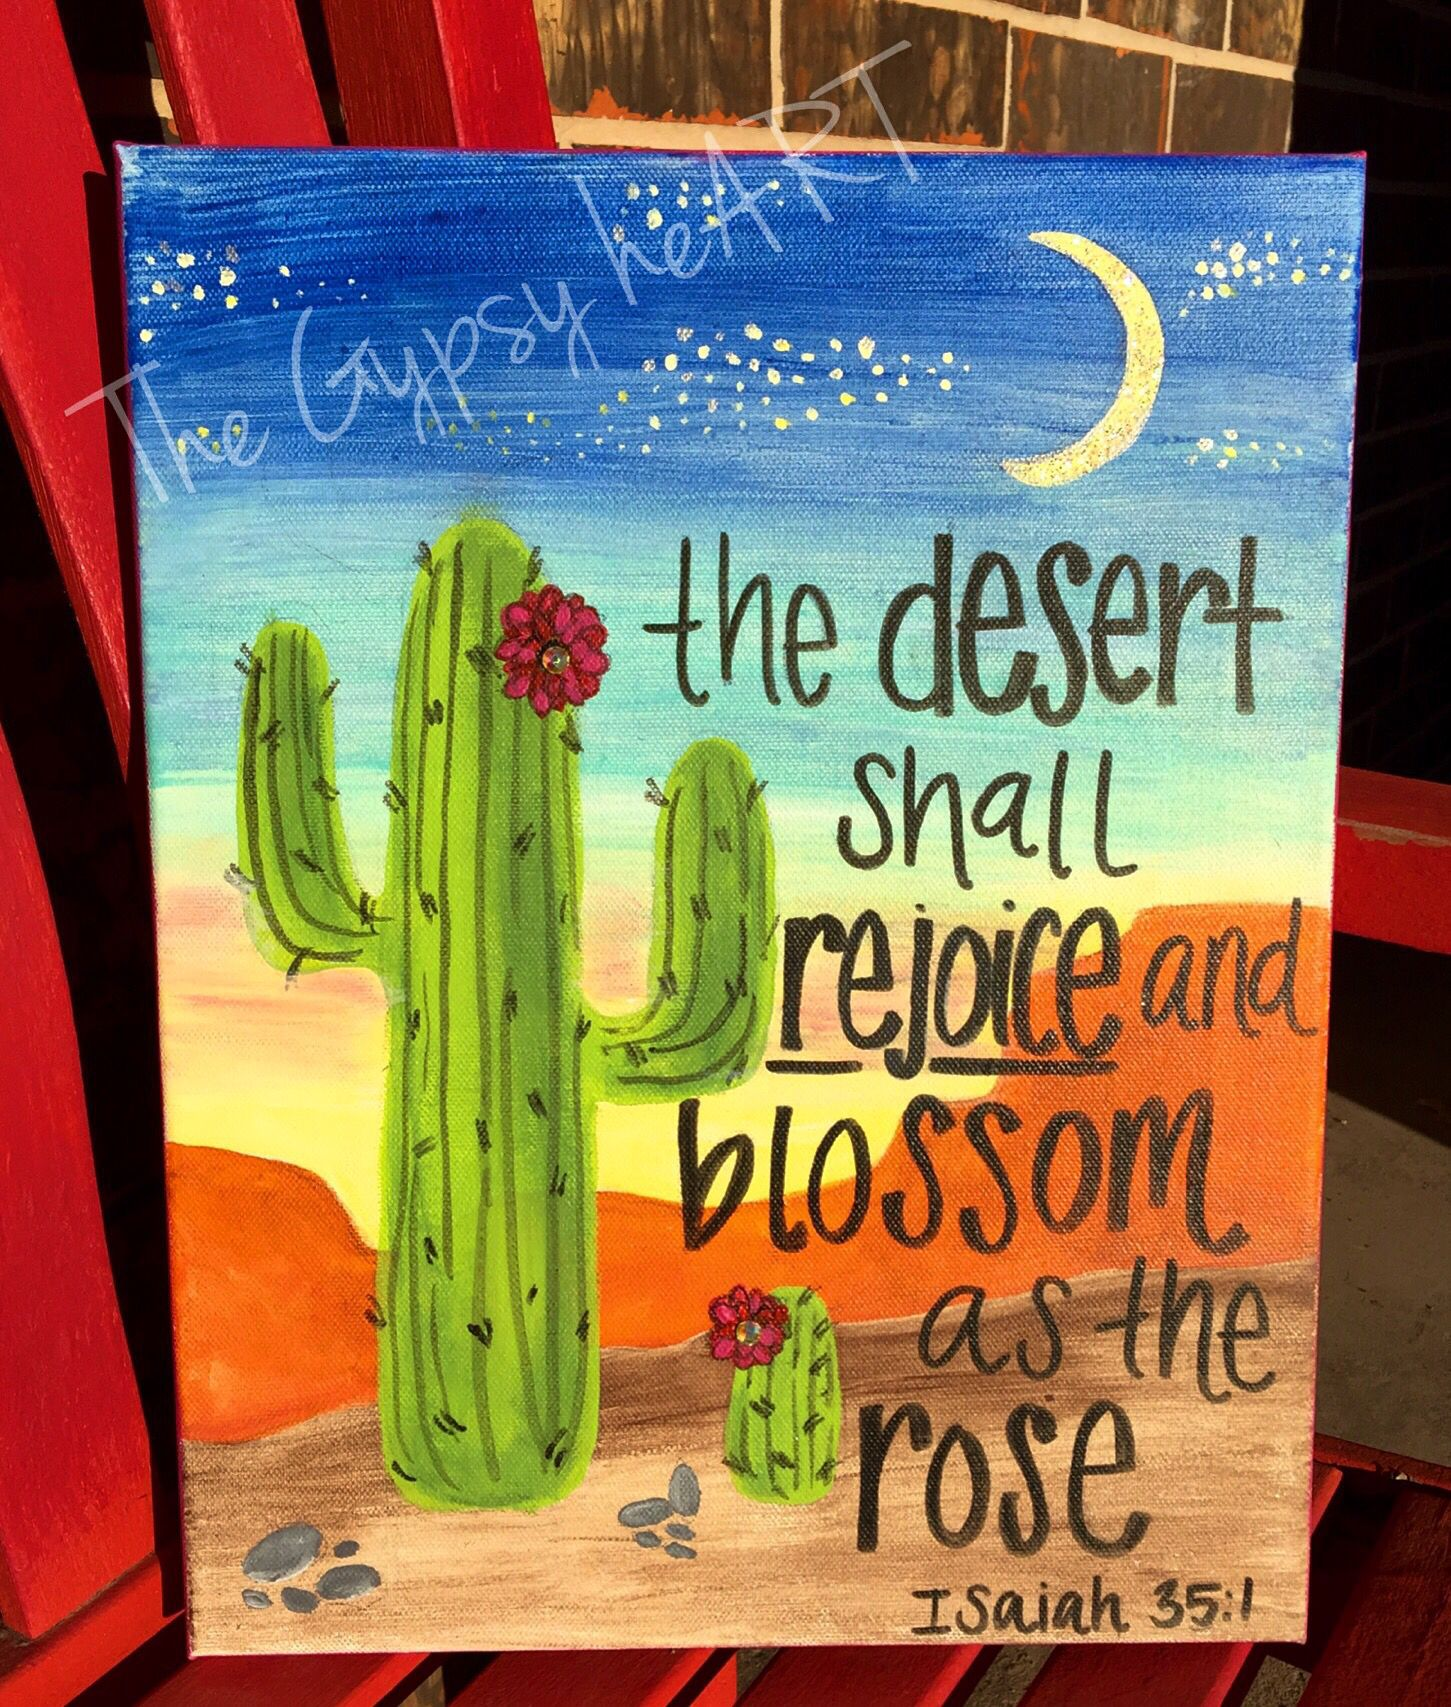 The desert shall rejoice and blossom as the rose  Isaiah 35:1